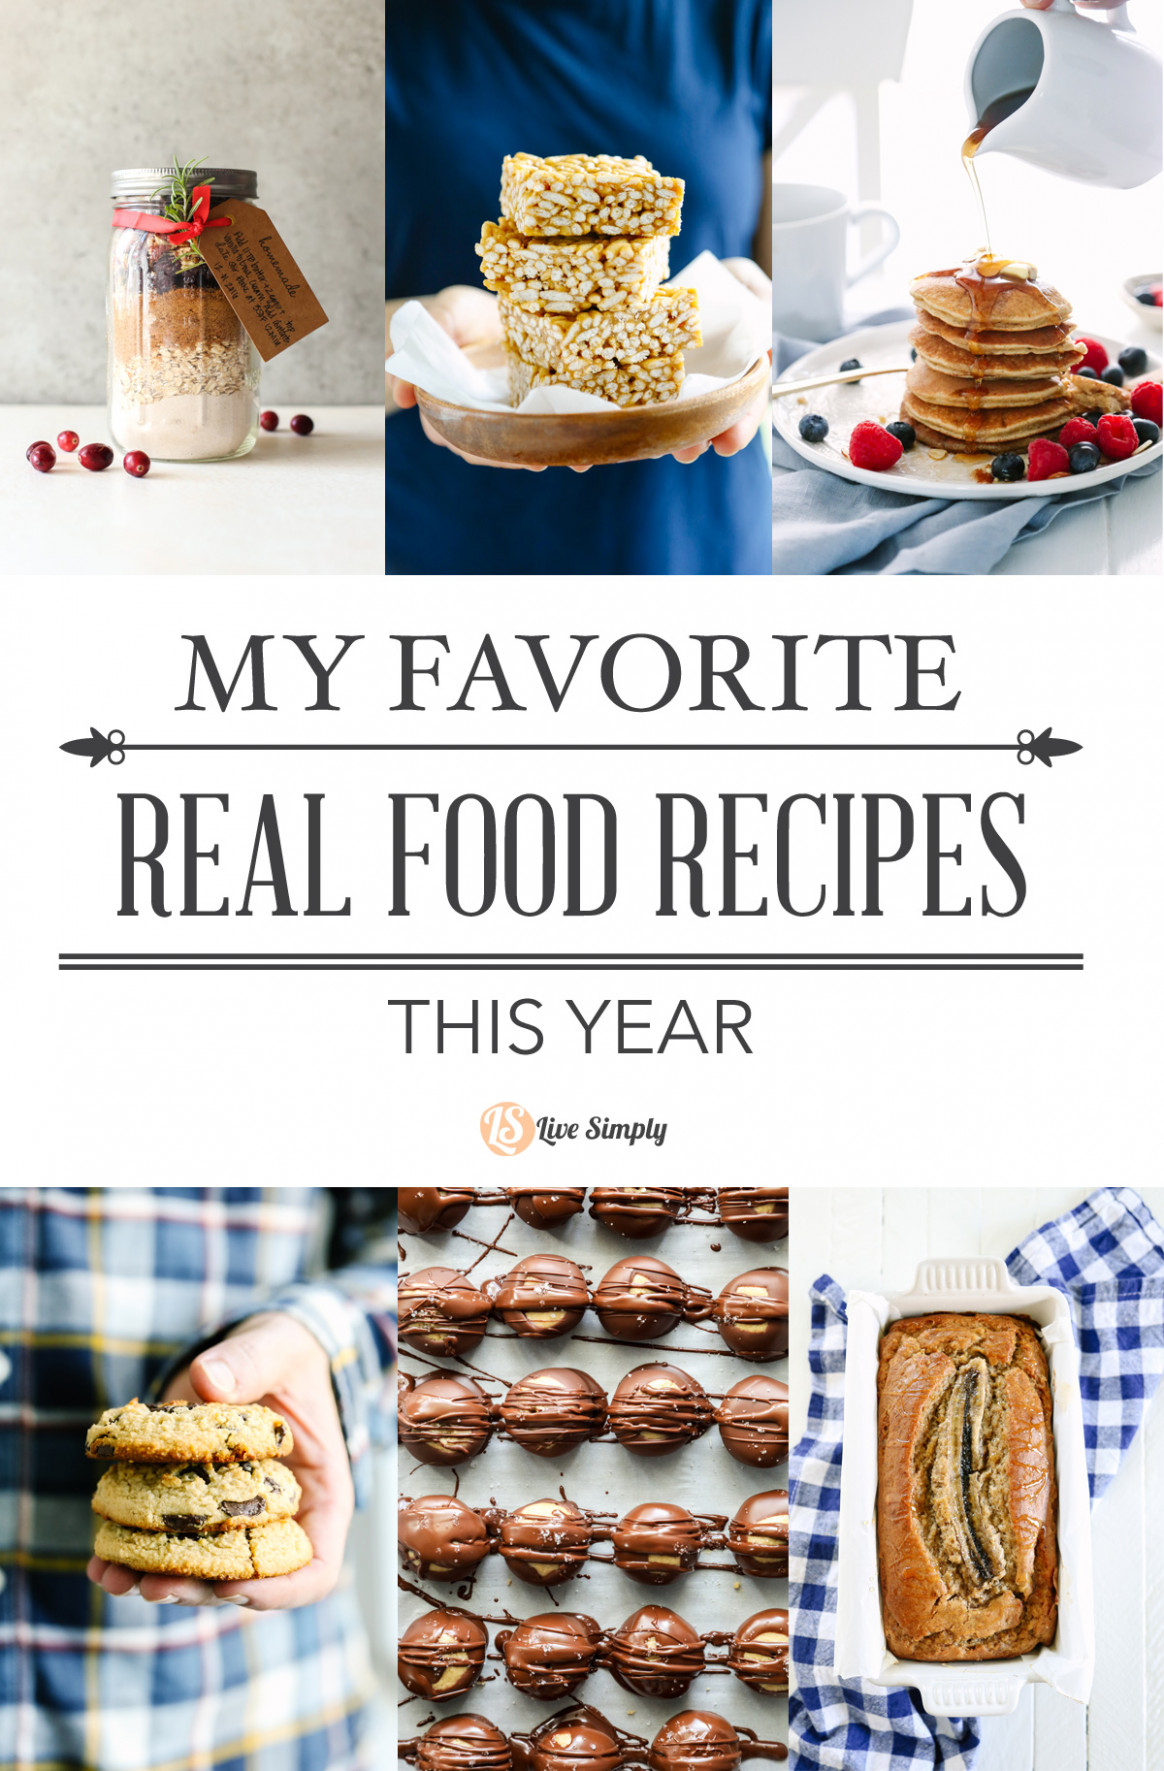 My Favorite Real Food Recipes From 13 - Live Simply - Real Food Recipes